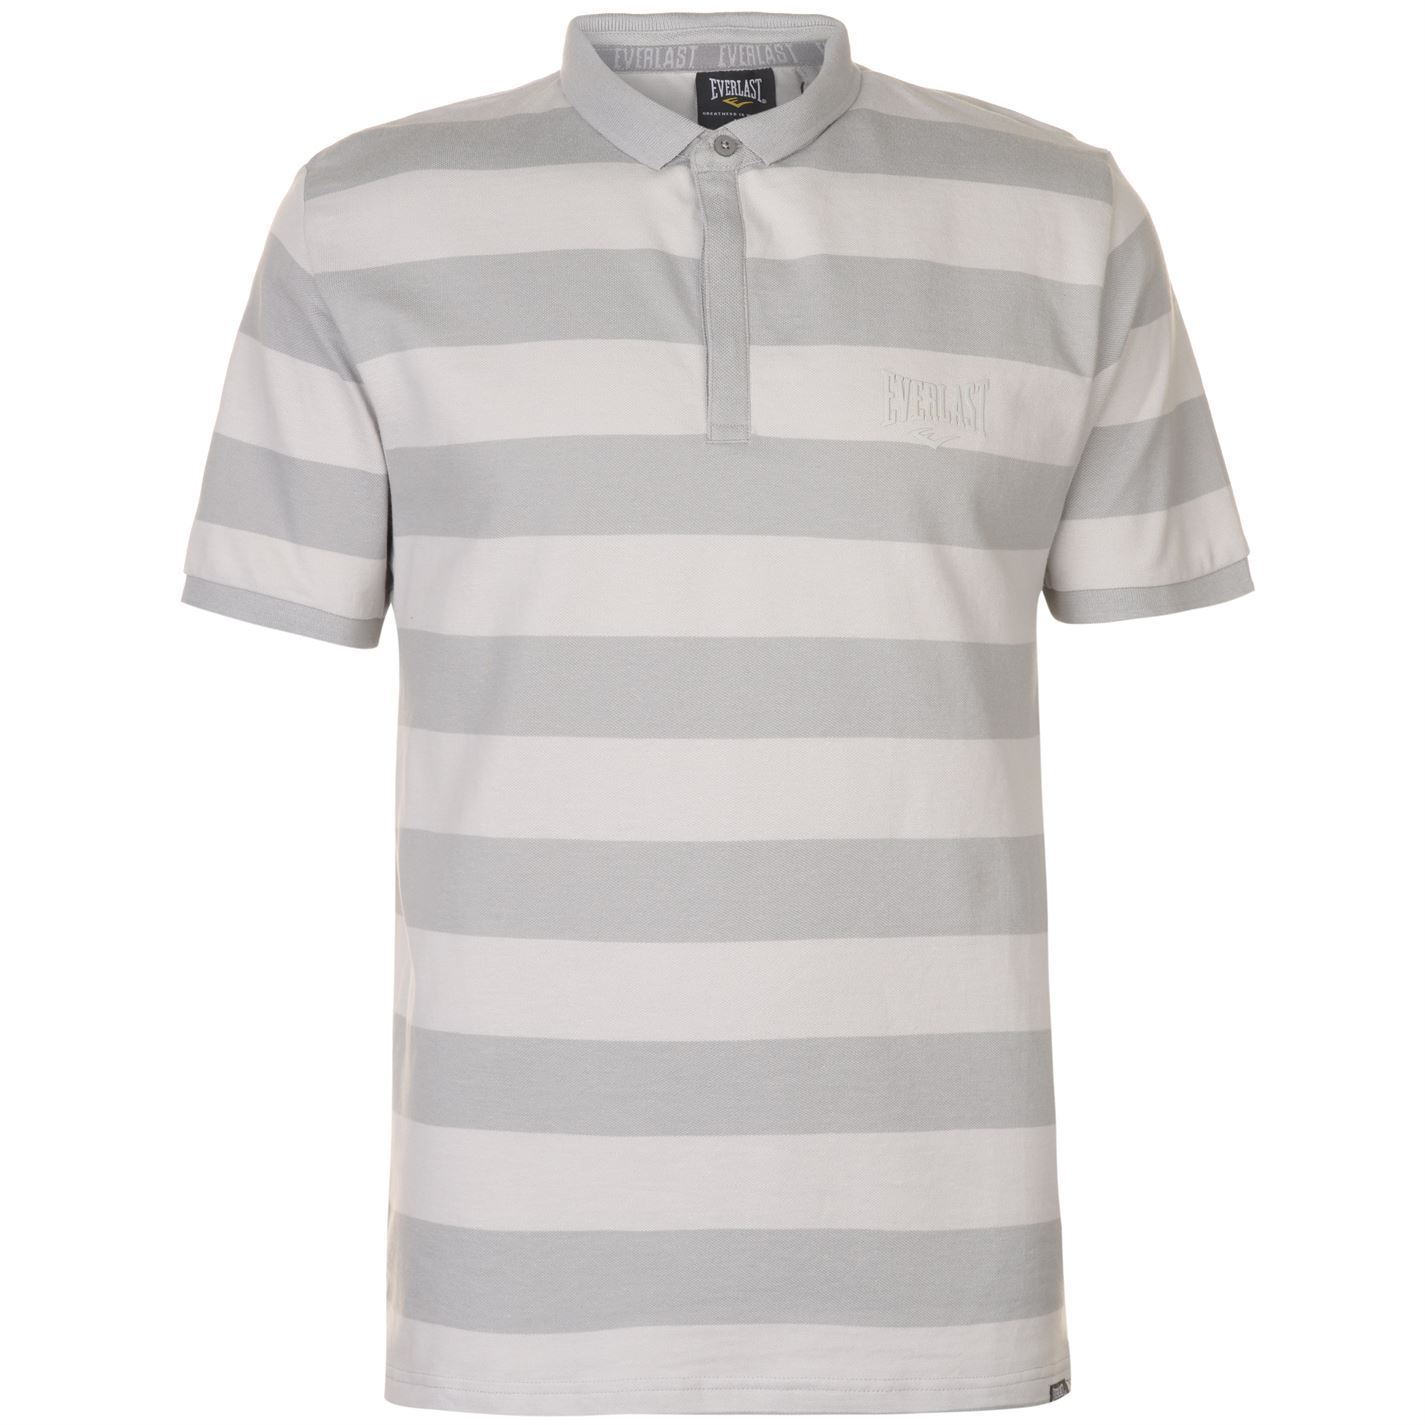 a87322fdc29 The Everlast Stripe Polo is a stylish shirt that s ideal for everyday wear.